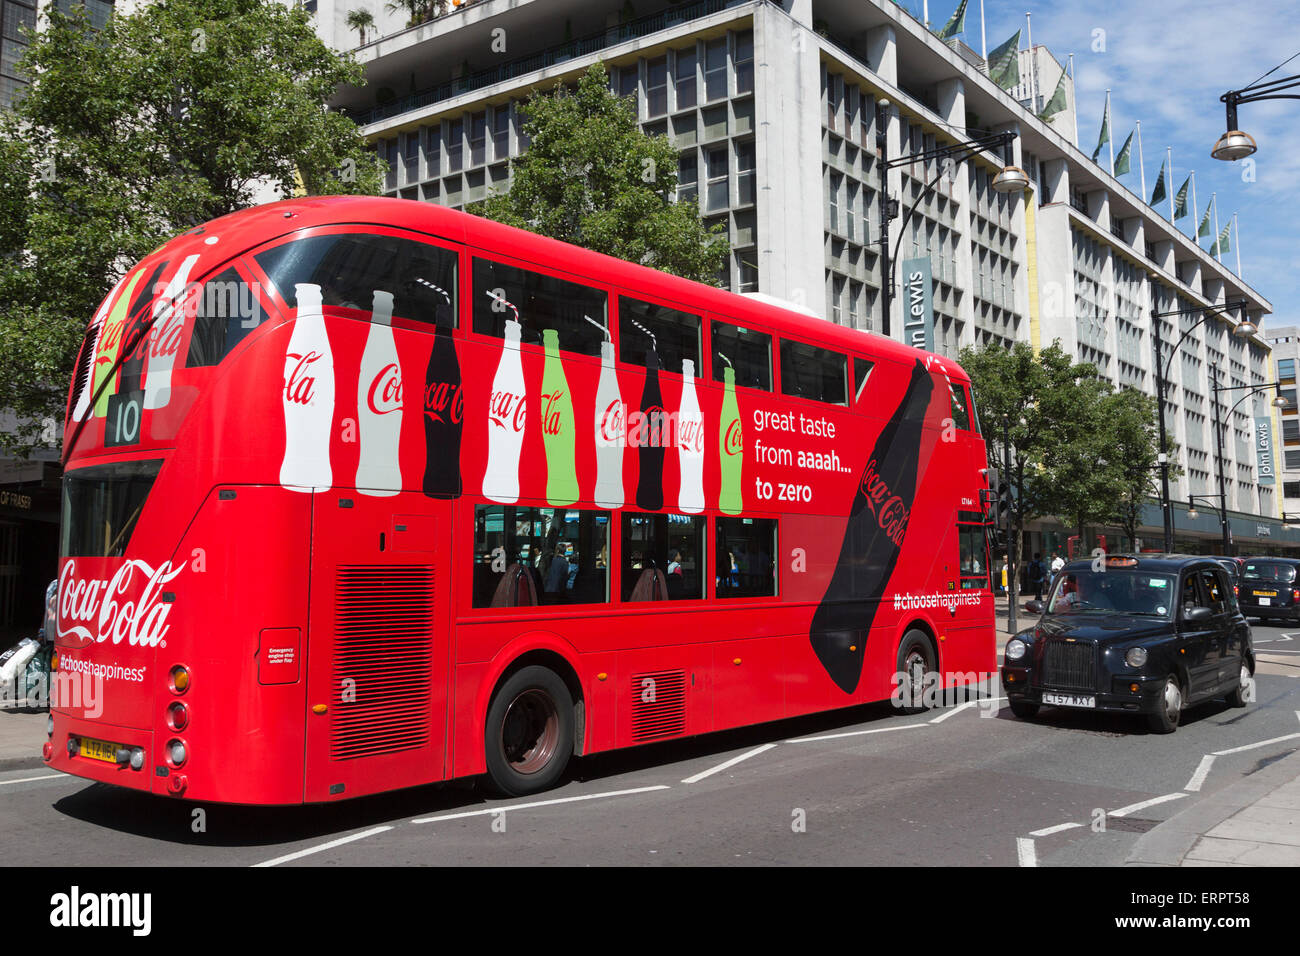 London Classic Red Bus Tour